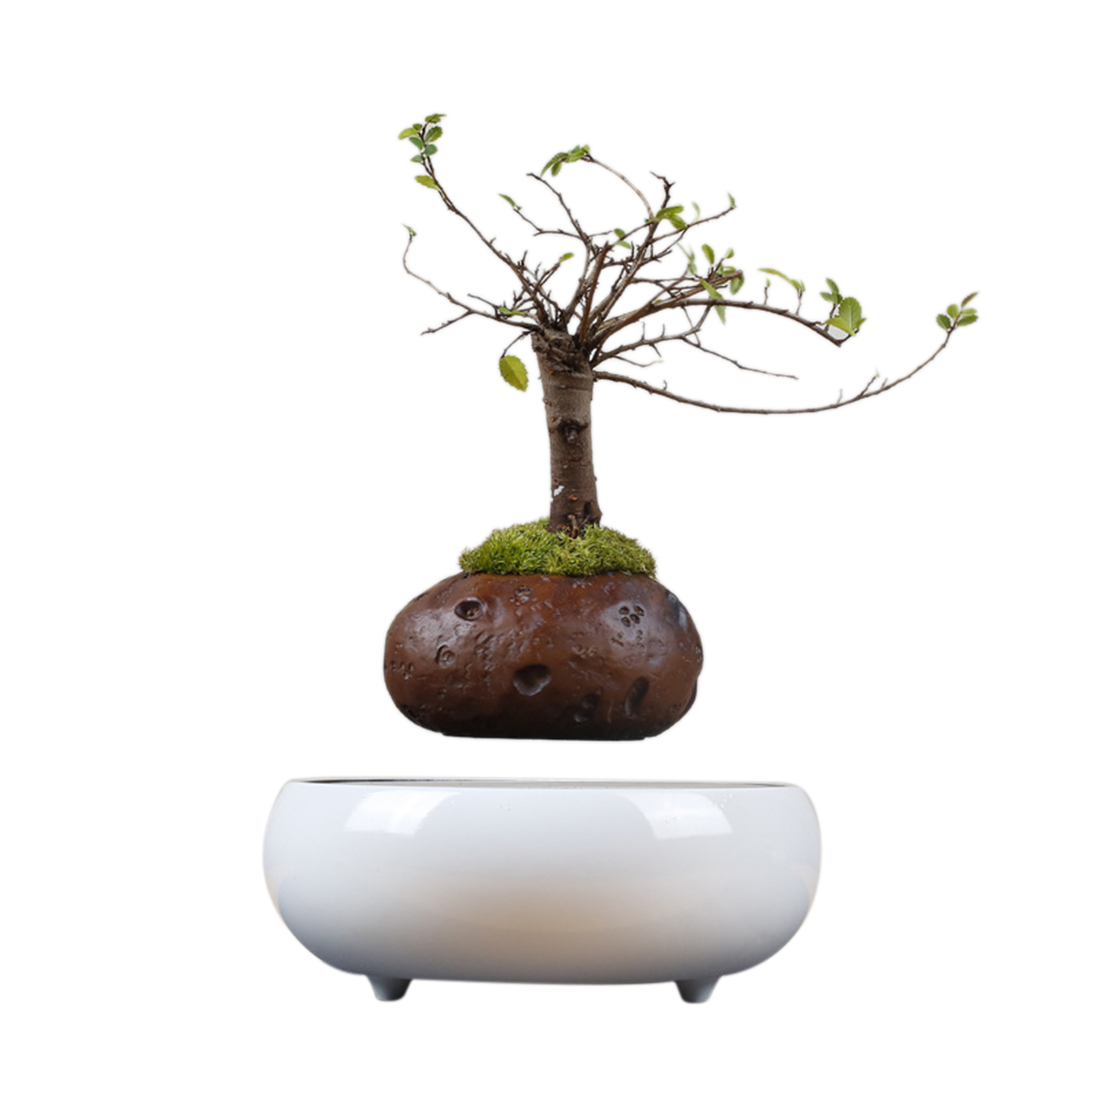 New Popular Suspended Plant <font><b>Pot</b></font> Floating <font><b>Magnetic</b></font> Plant with Imitation Ceramic Base for Home Office Garden Decor - EU Plug image